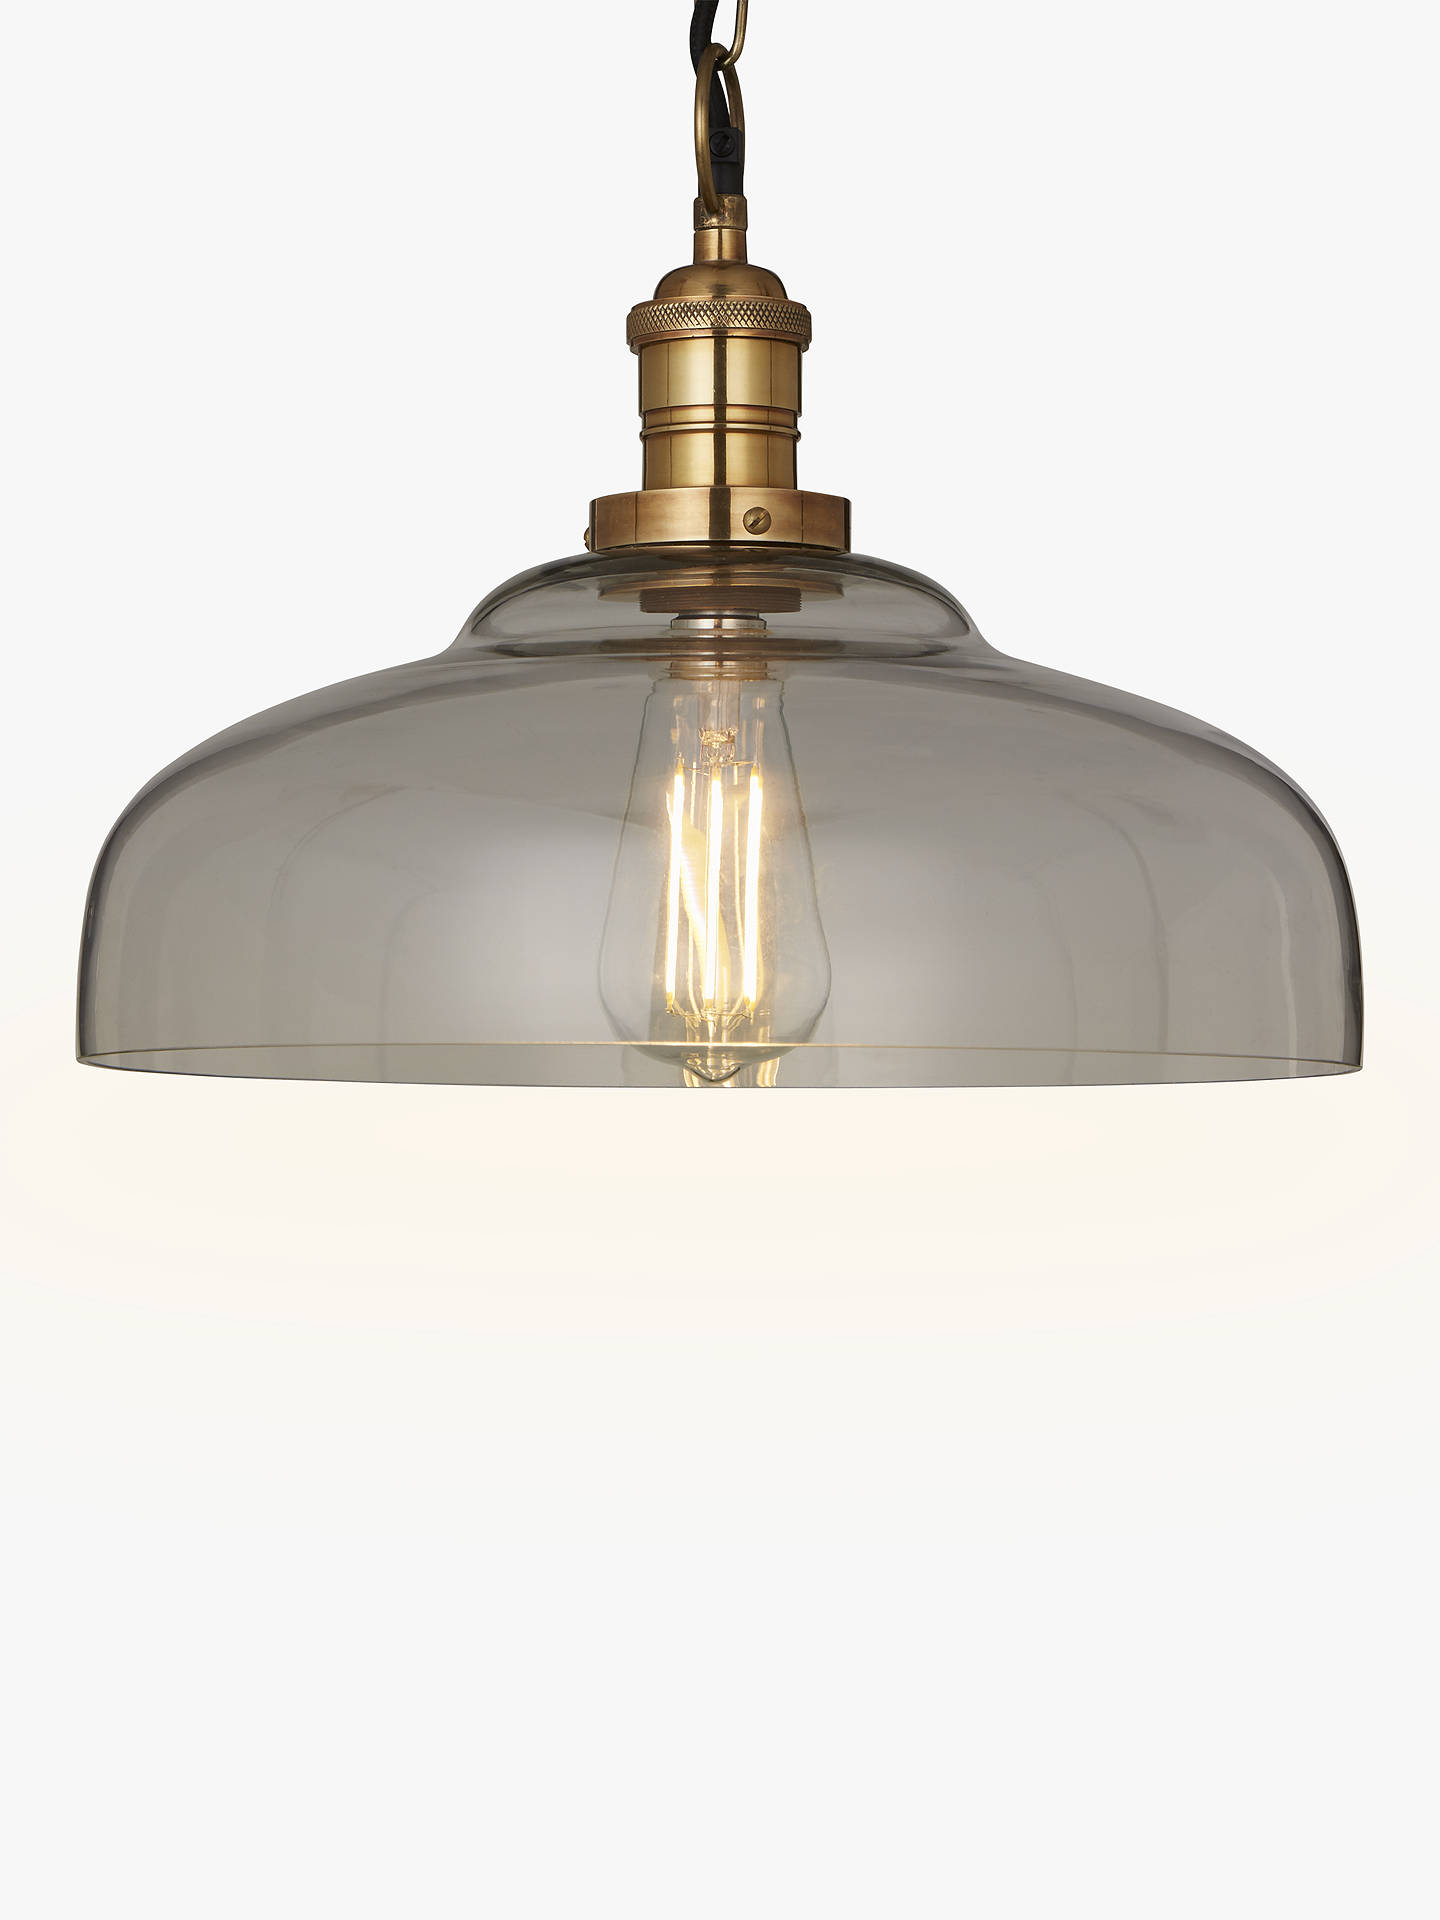 Croft collection clyde glass pendant ceiling light clear